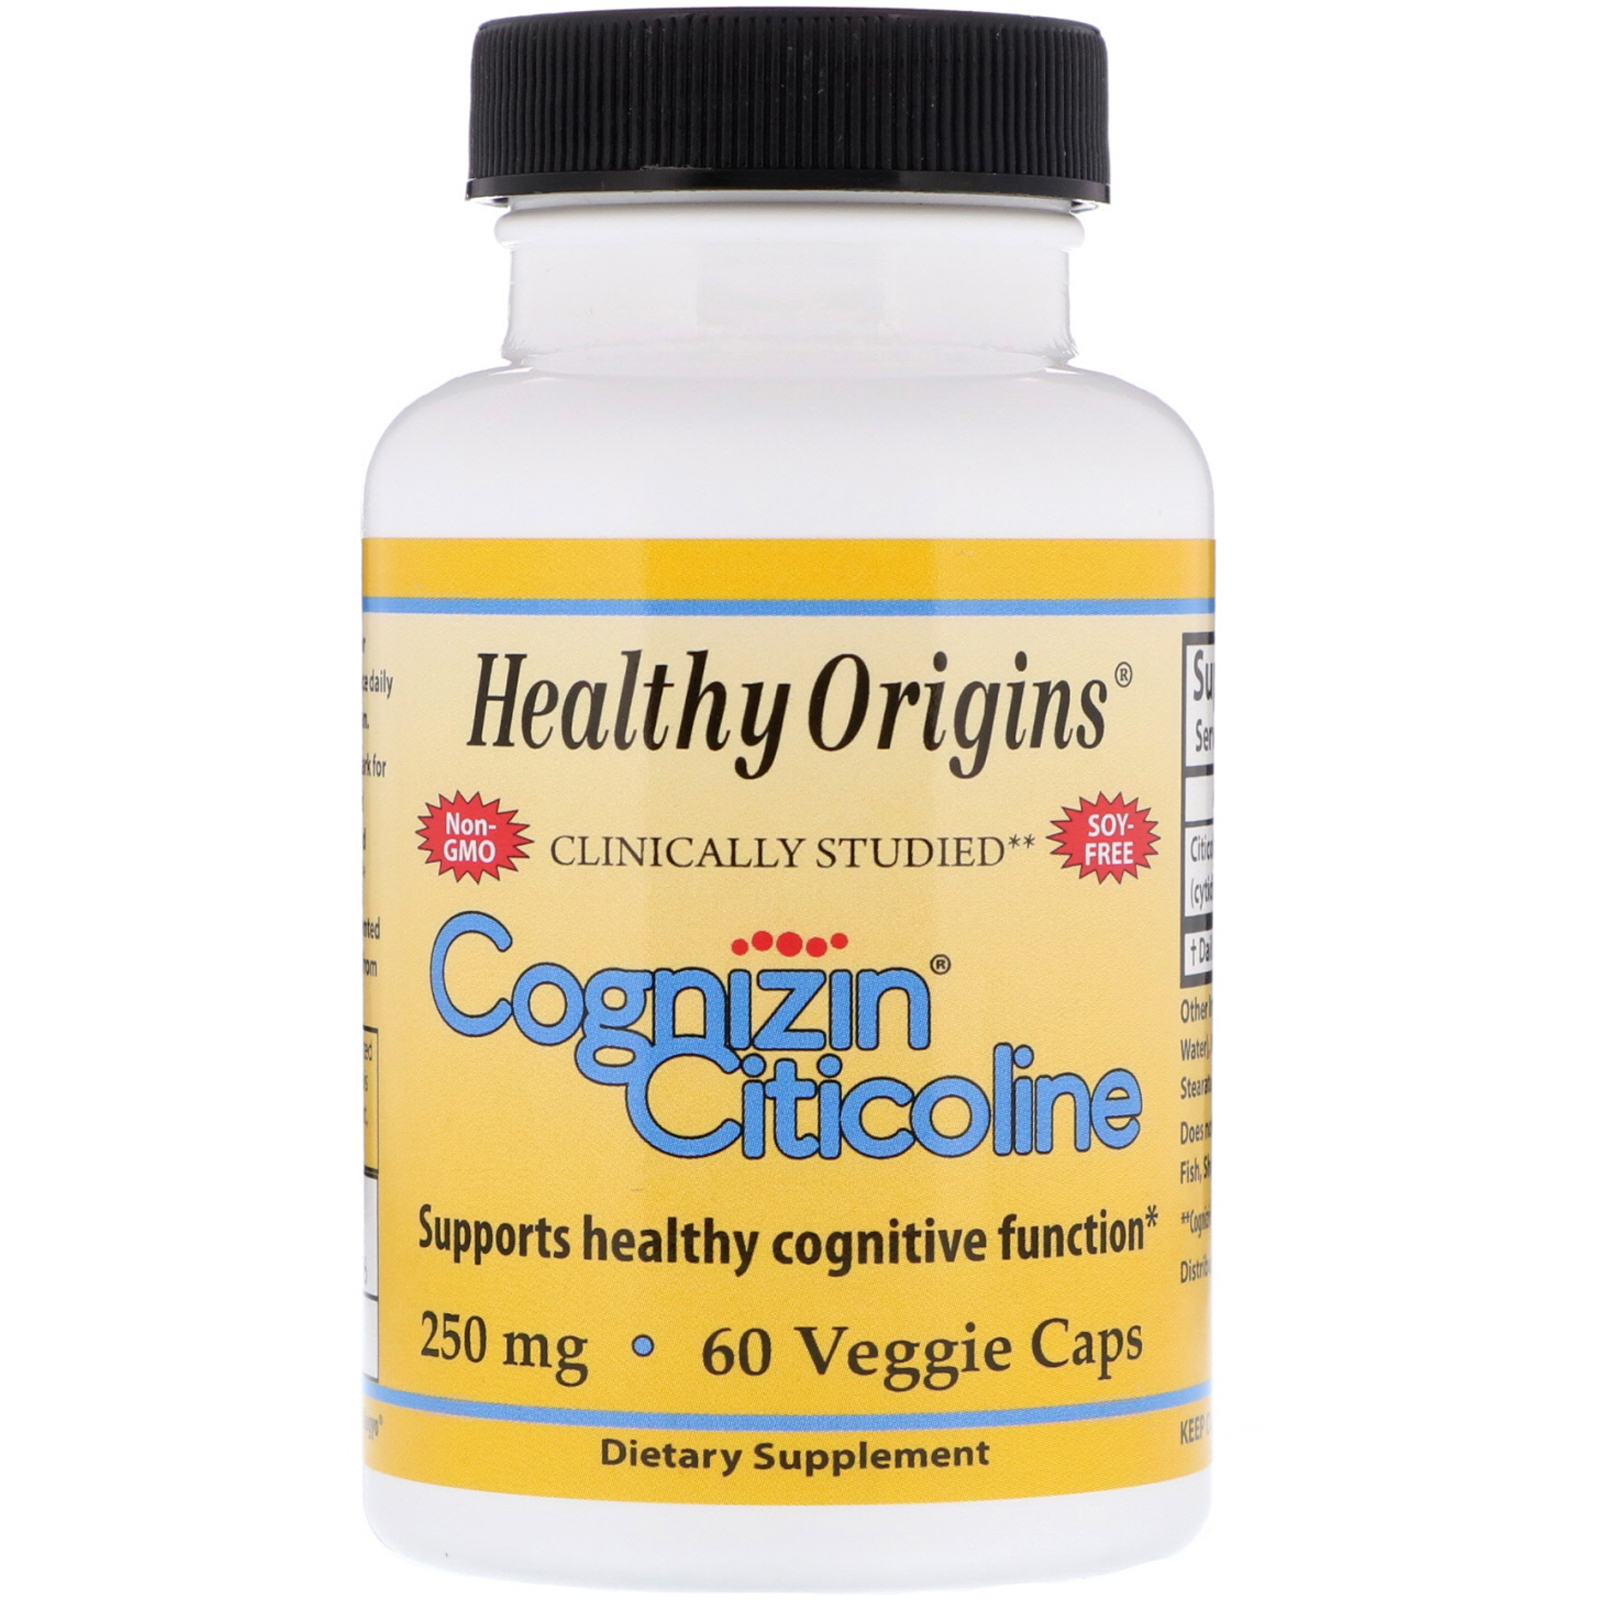 Healthy Origins, Cognizin Citicoline, 250 mg, 60 Veggie Caps